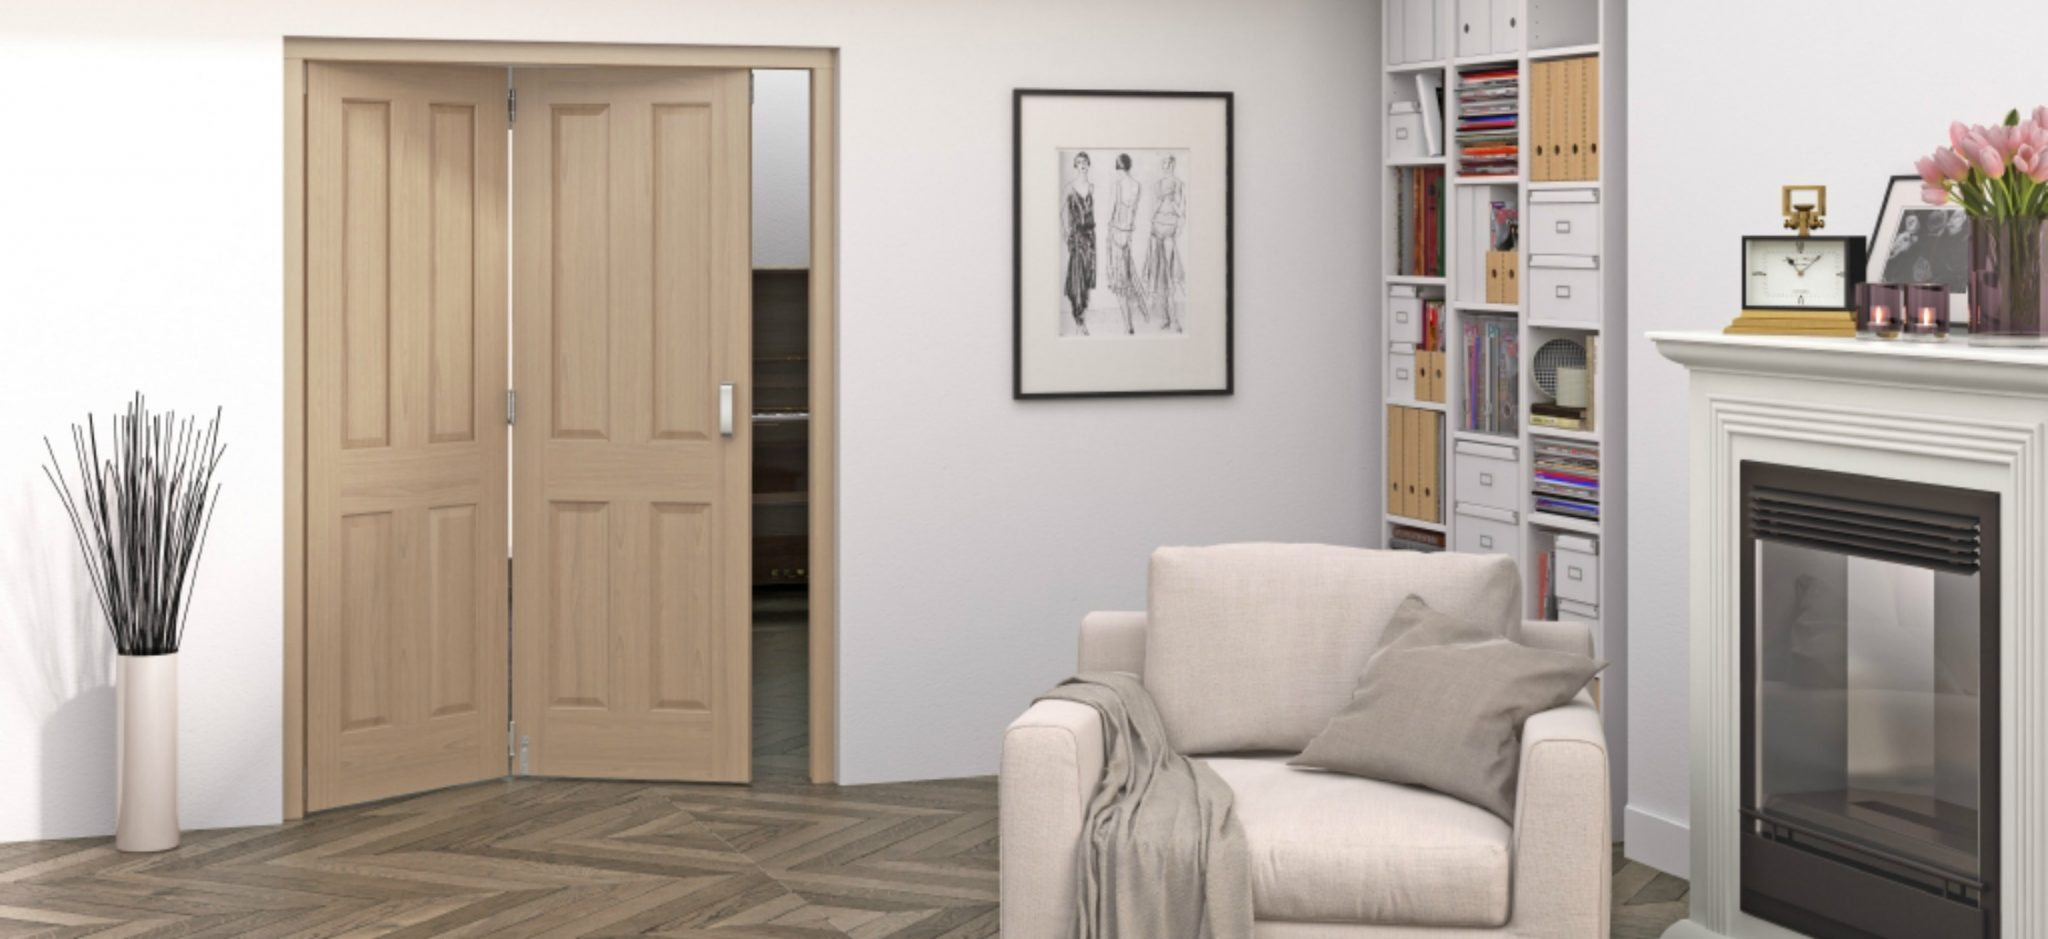 Space Saving Door which space-saving doors should i choose? - doors & more